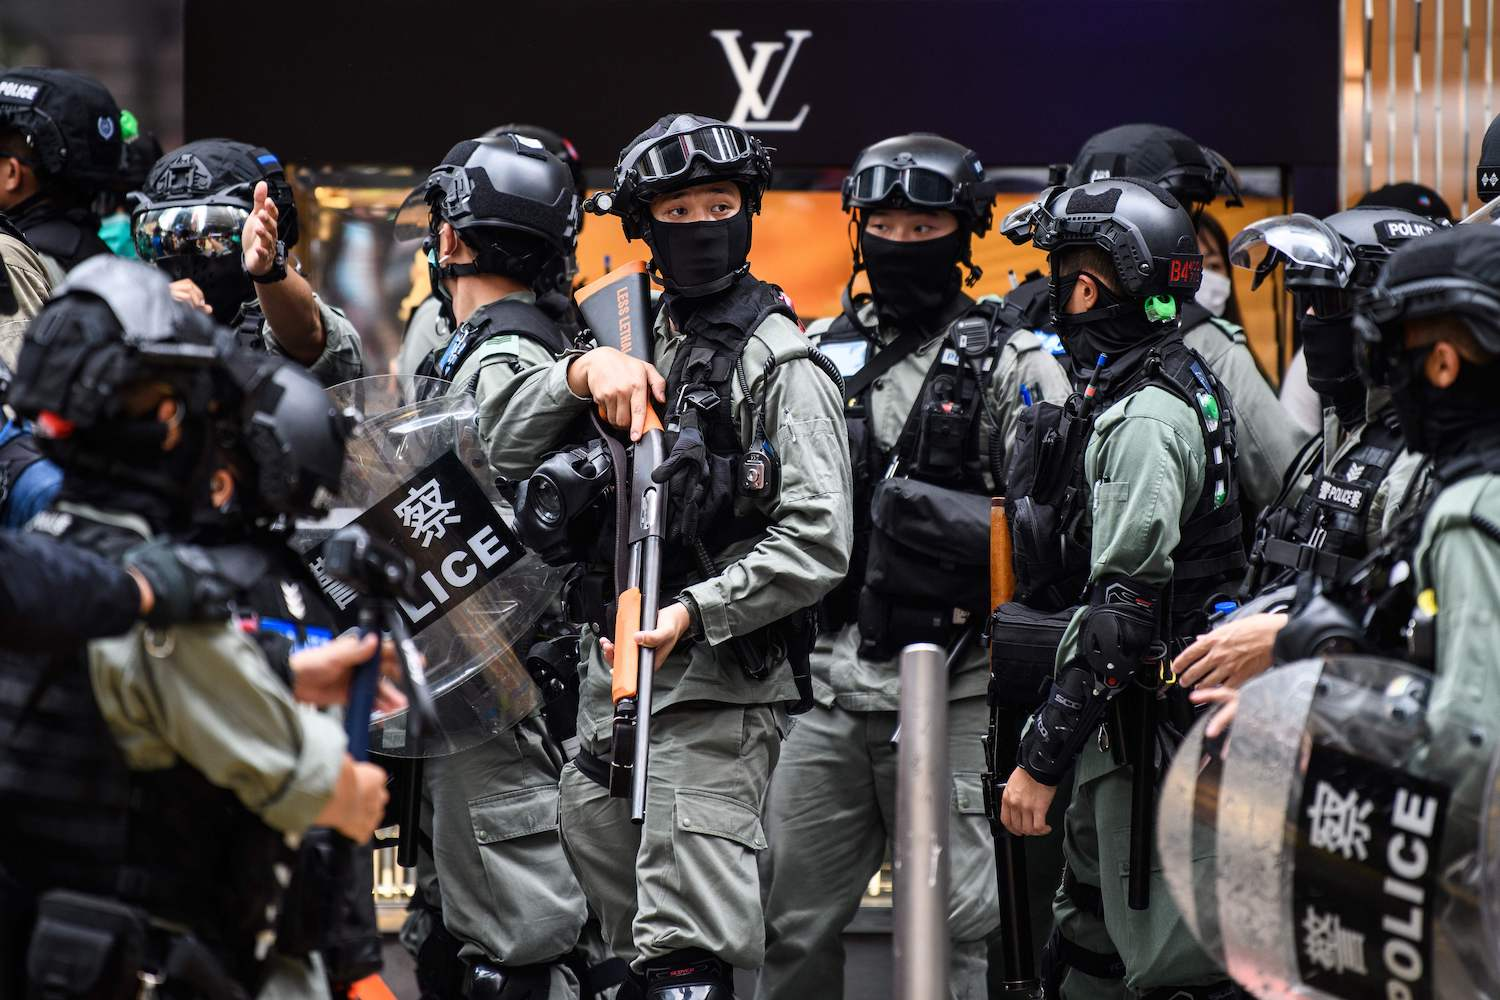 foreignpolicy.com - Colm Quinn - Will the U.S. Sanction China over Hong Kong Law?